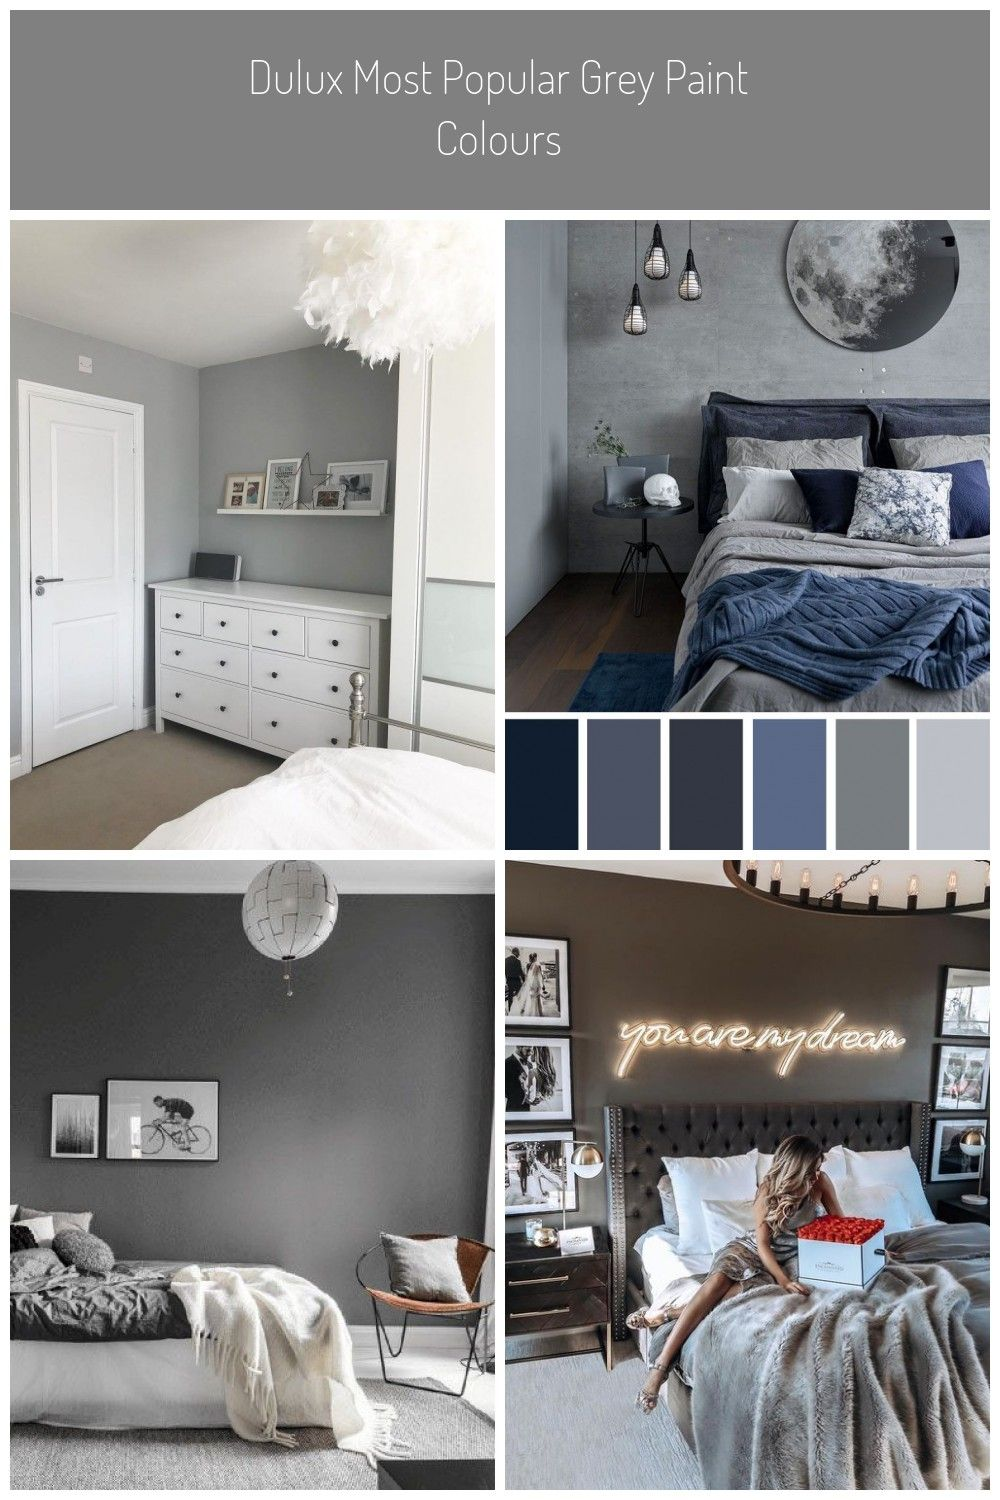 Dulux Most Popular Grey Paint Colours. Bedroom walls painted in